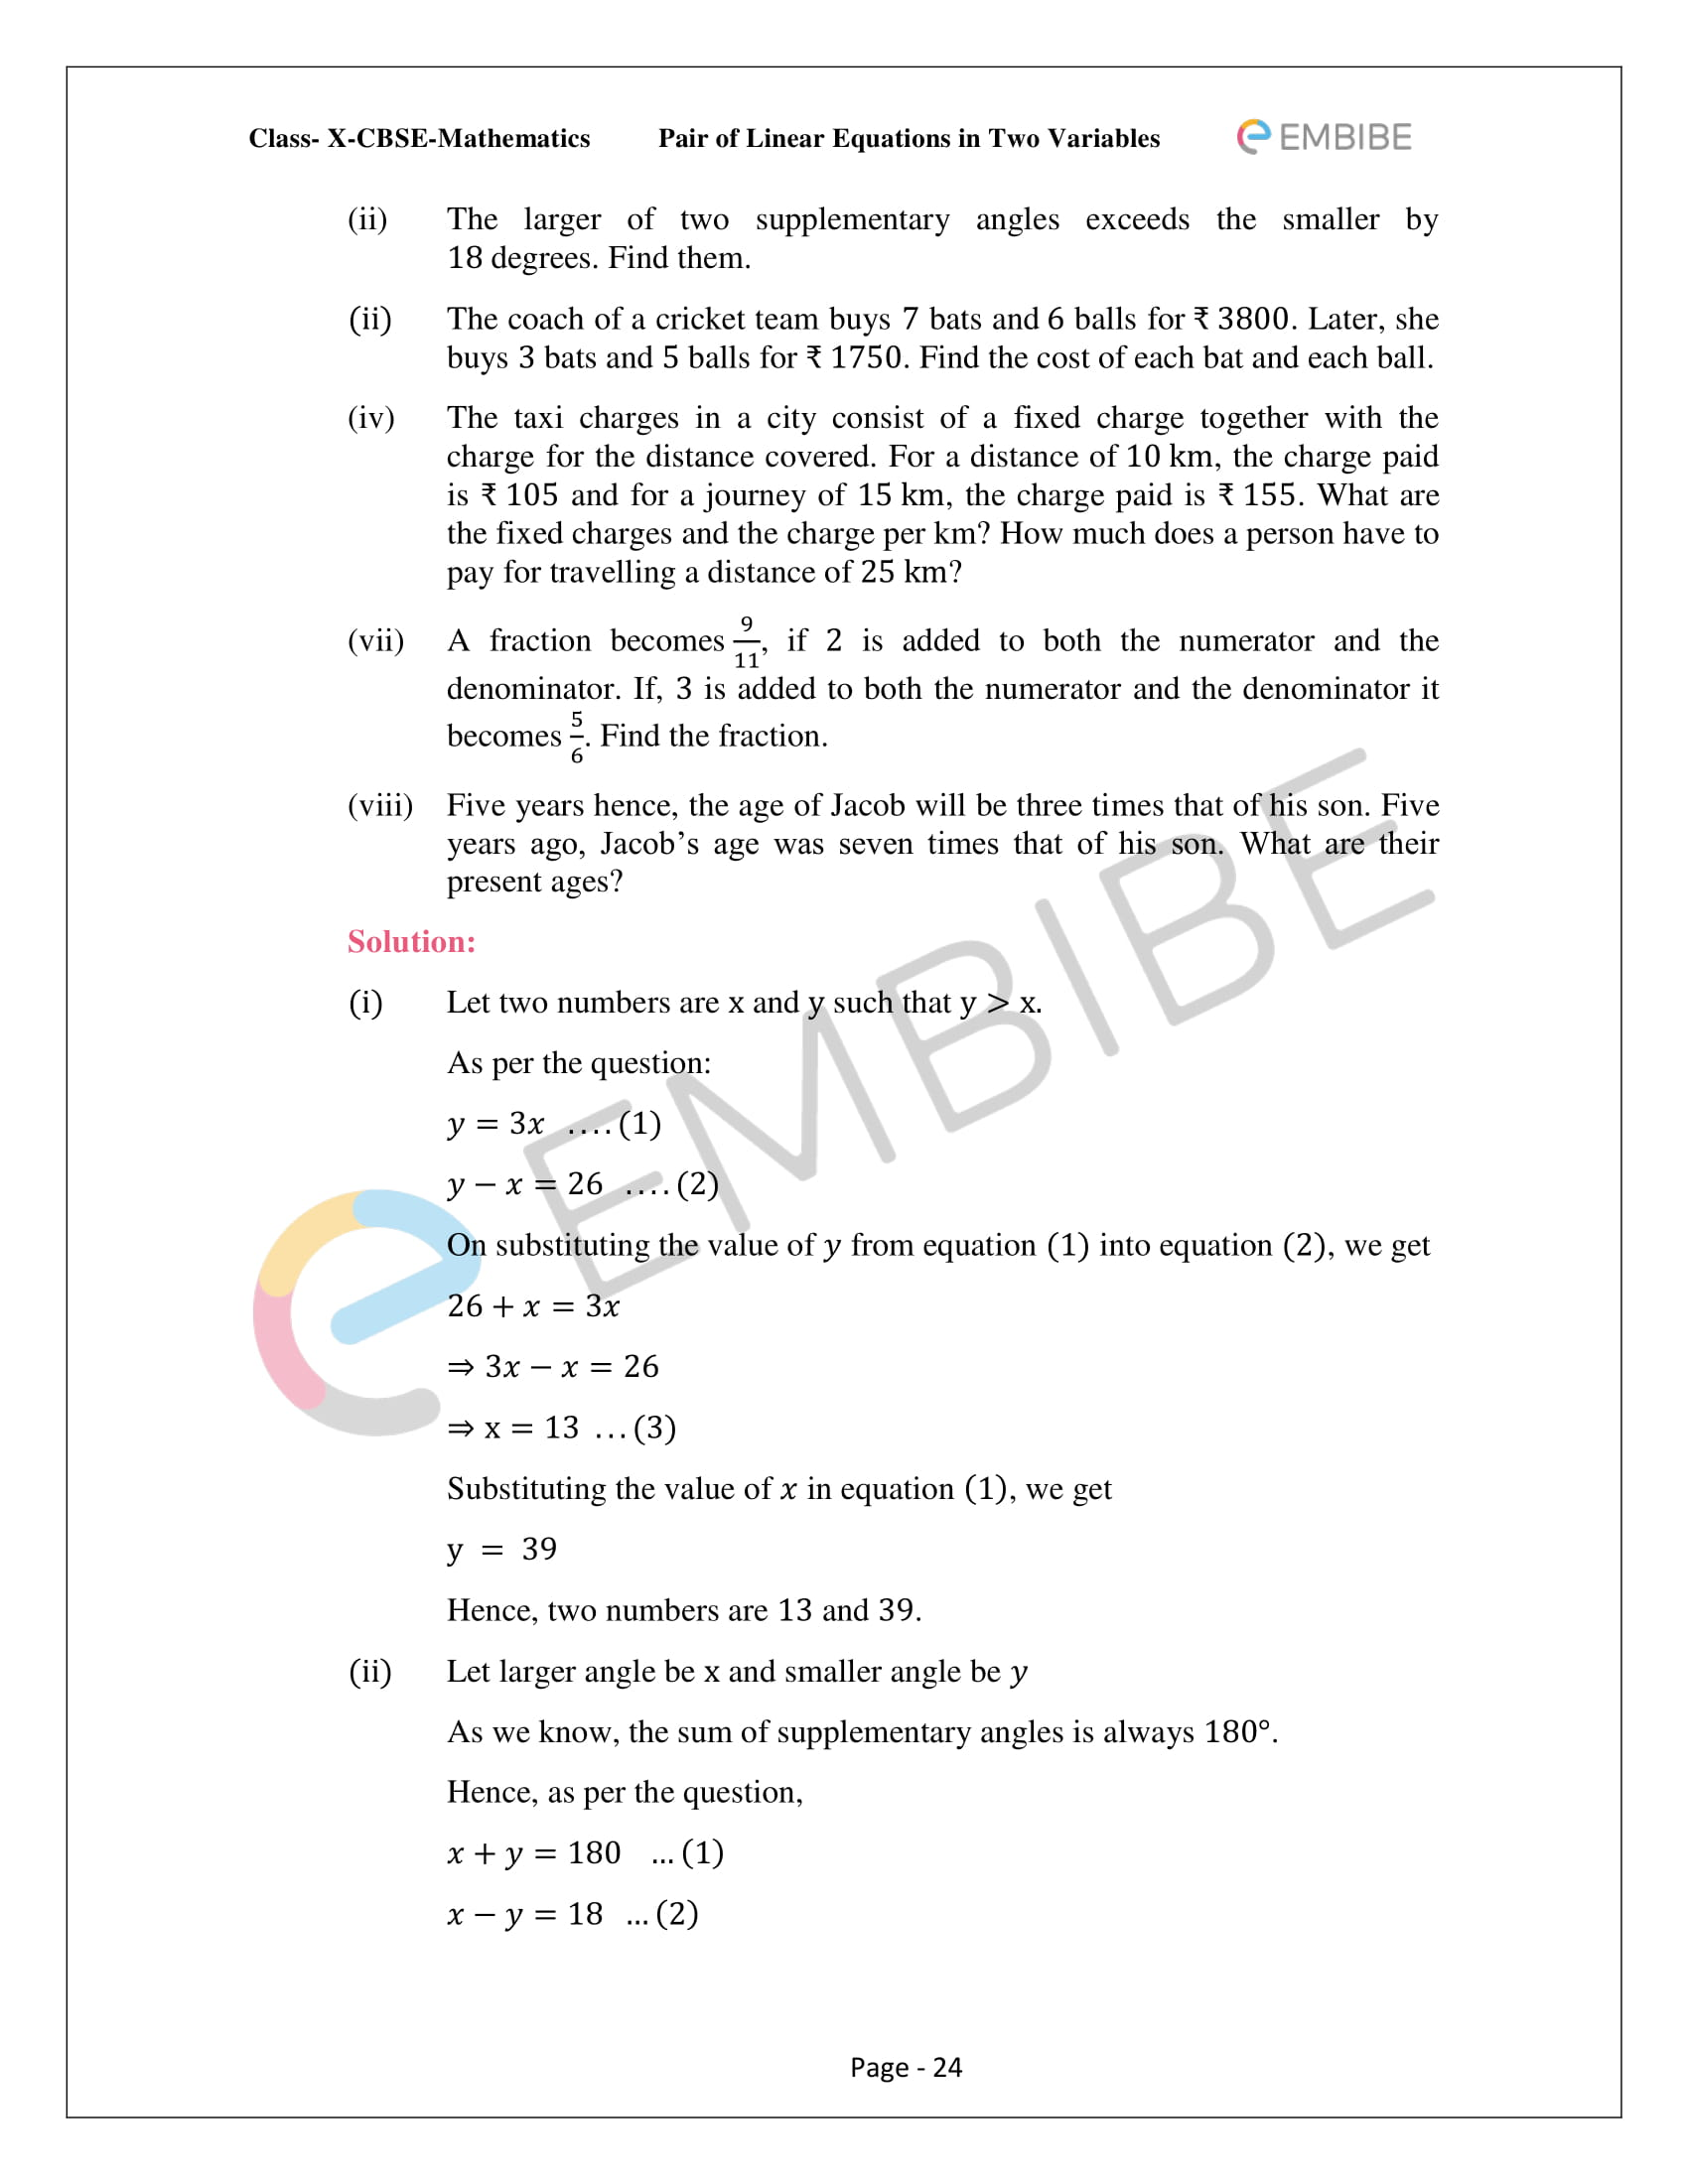 CBSE NCERT Solutions For Class 10 Maths Chapter 3 - Pair of Linear Equations In Two Variables - 24